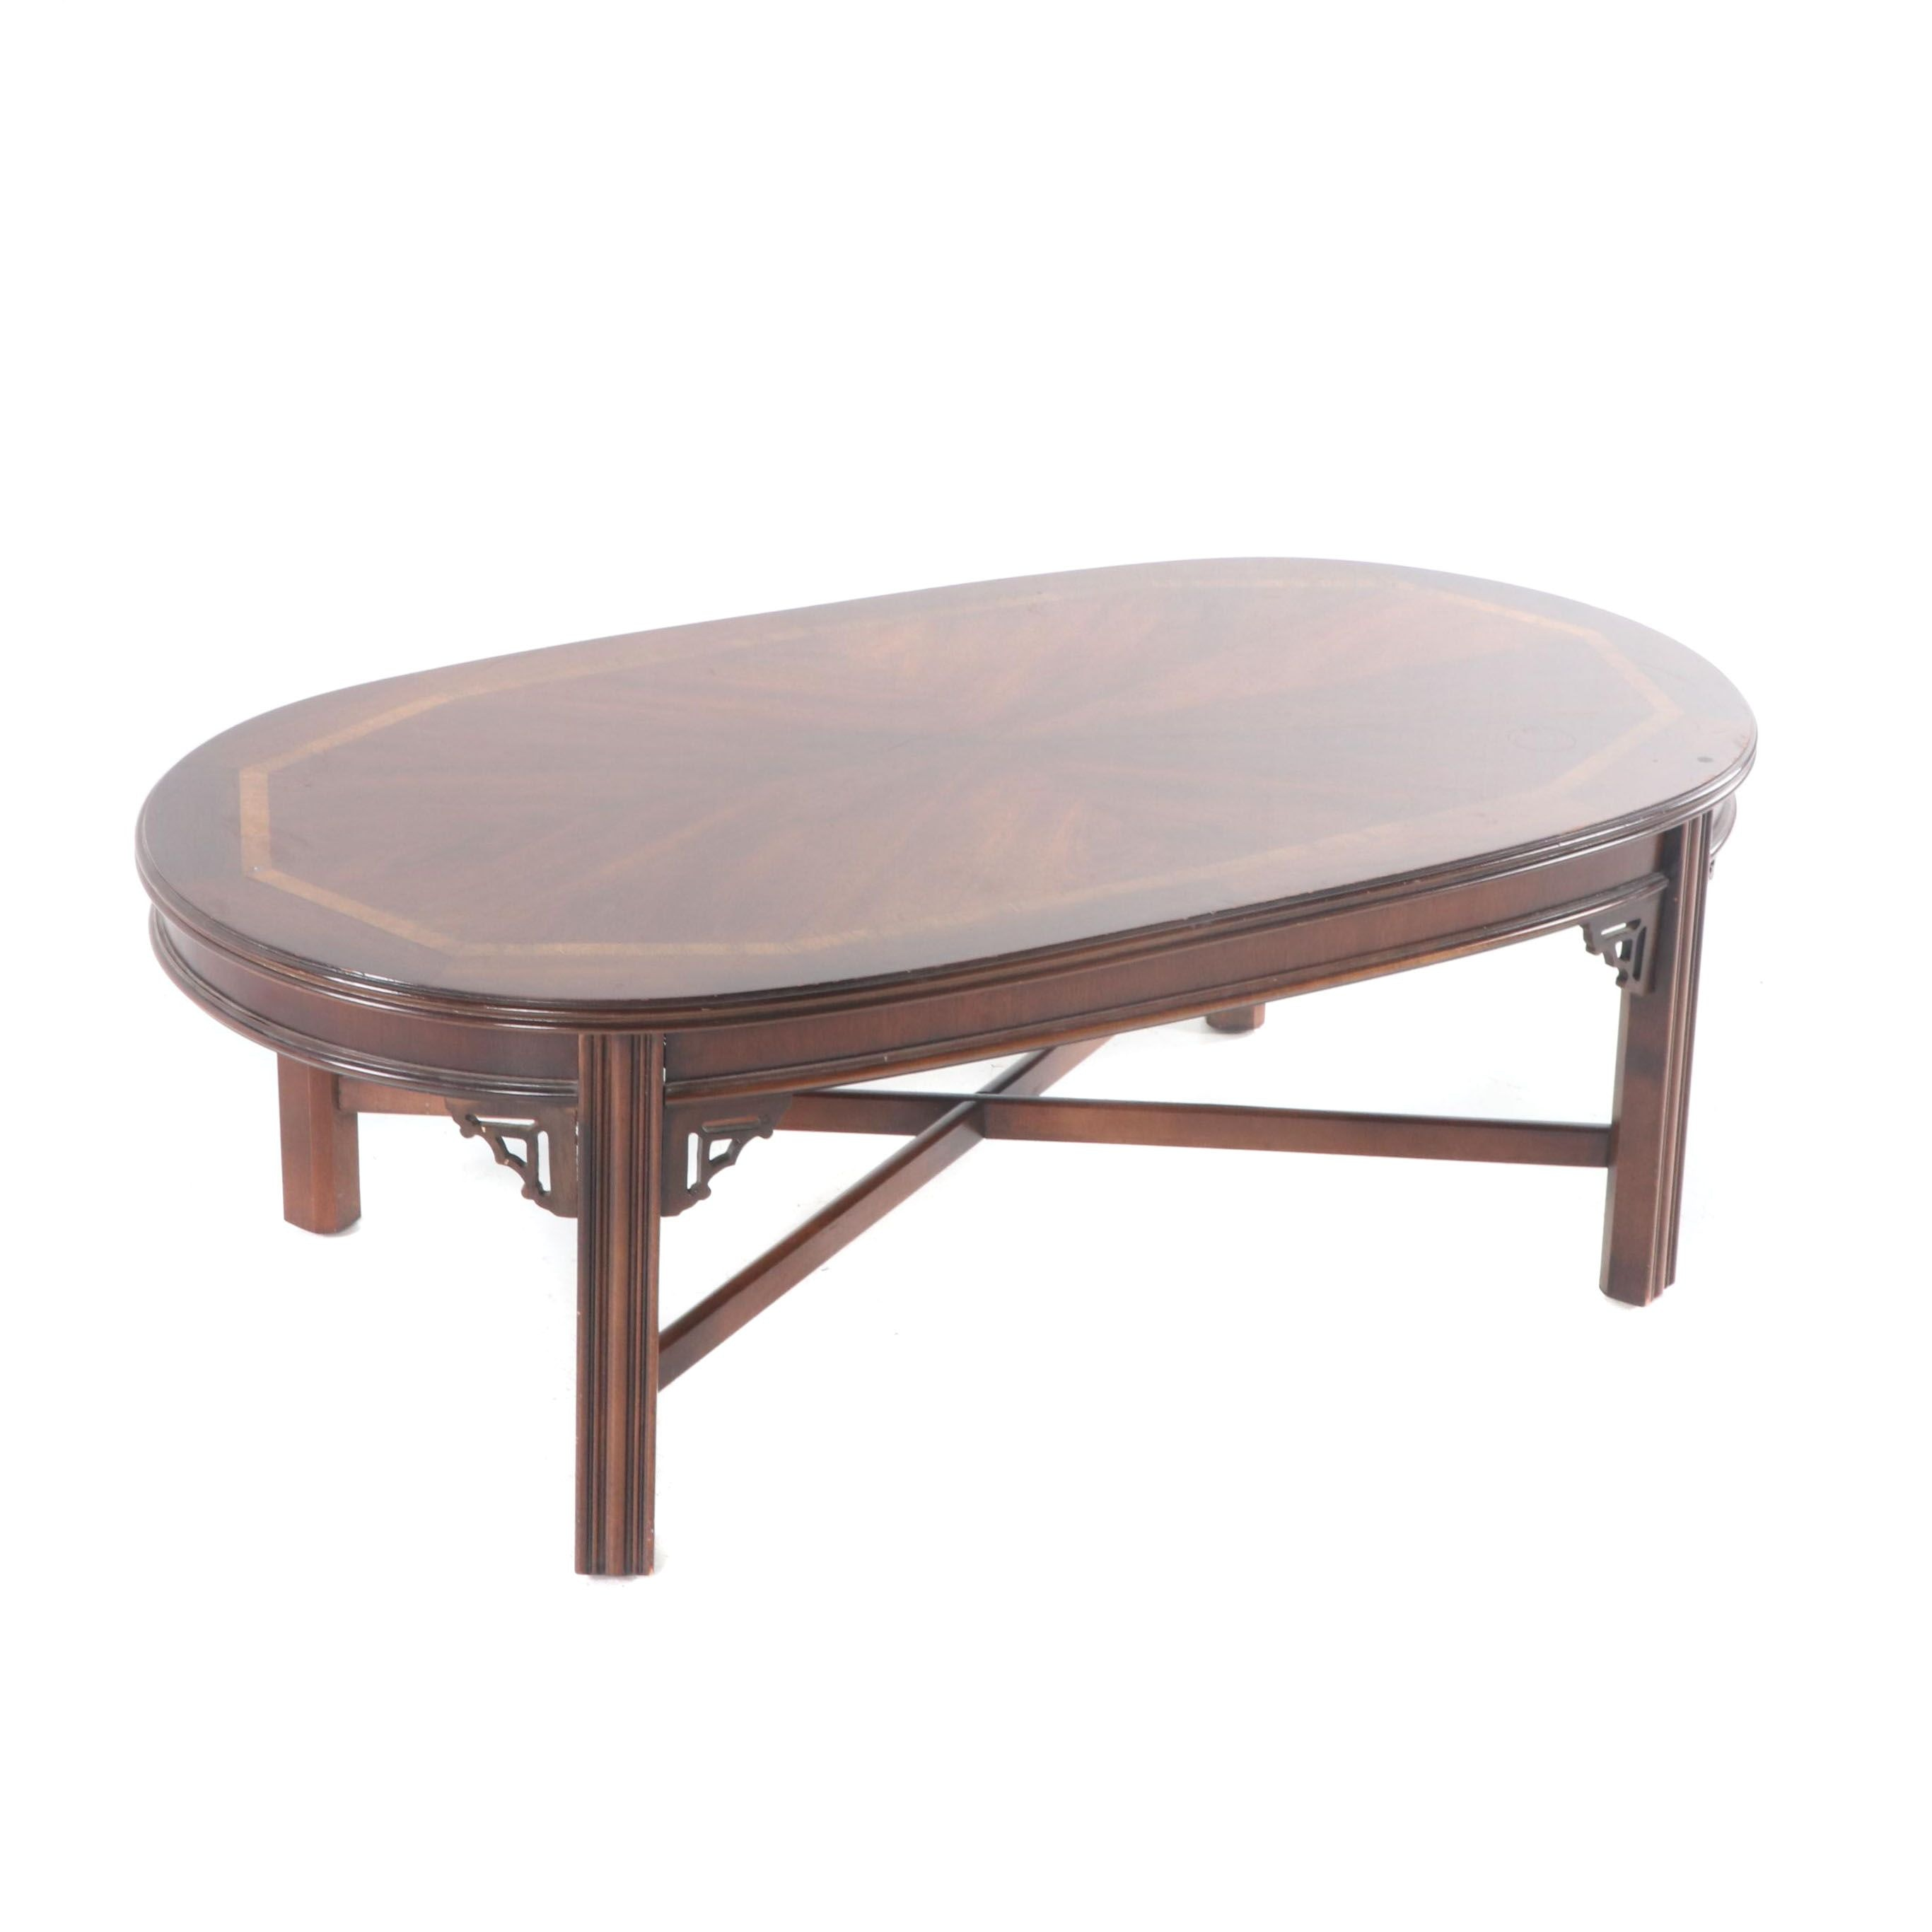 Chinese Chippendale Style Mahogany Veneer Coffee Table by Lane, Late 20th C.